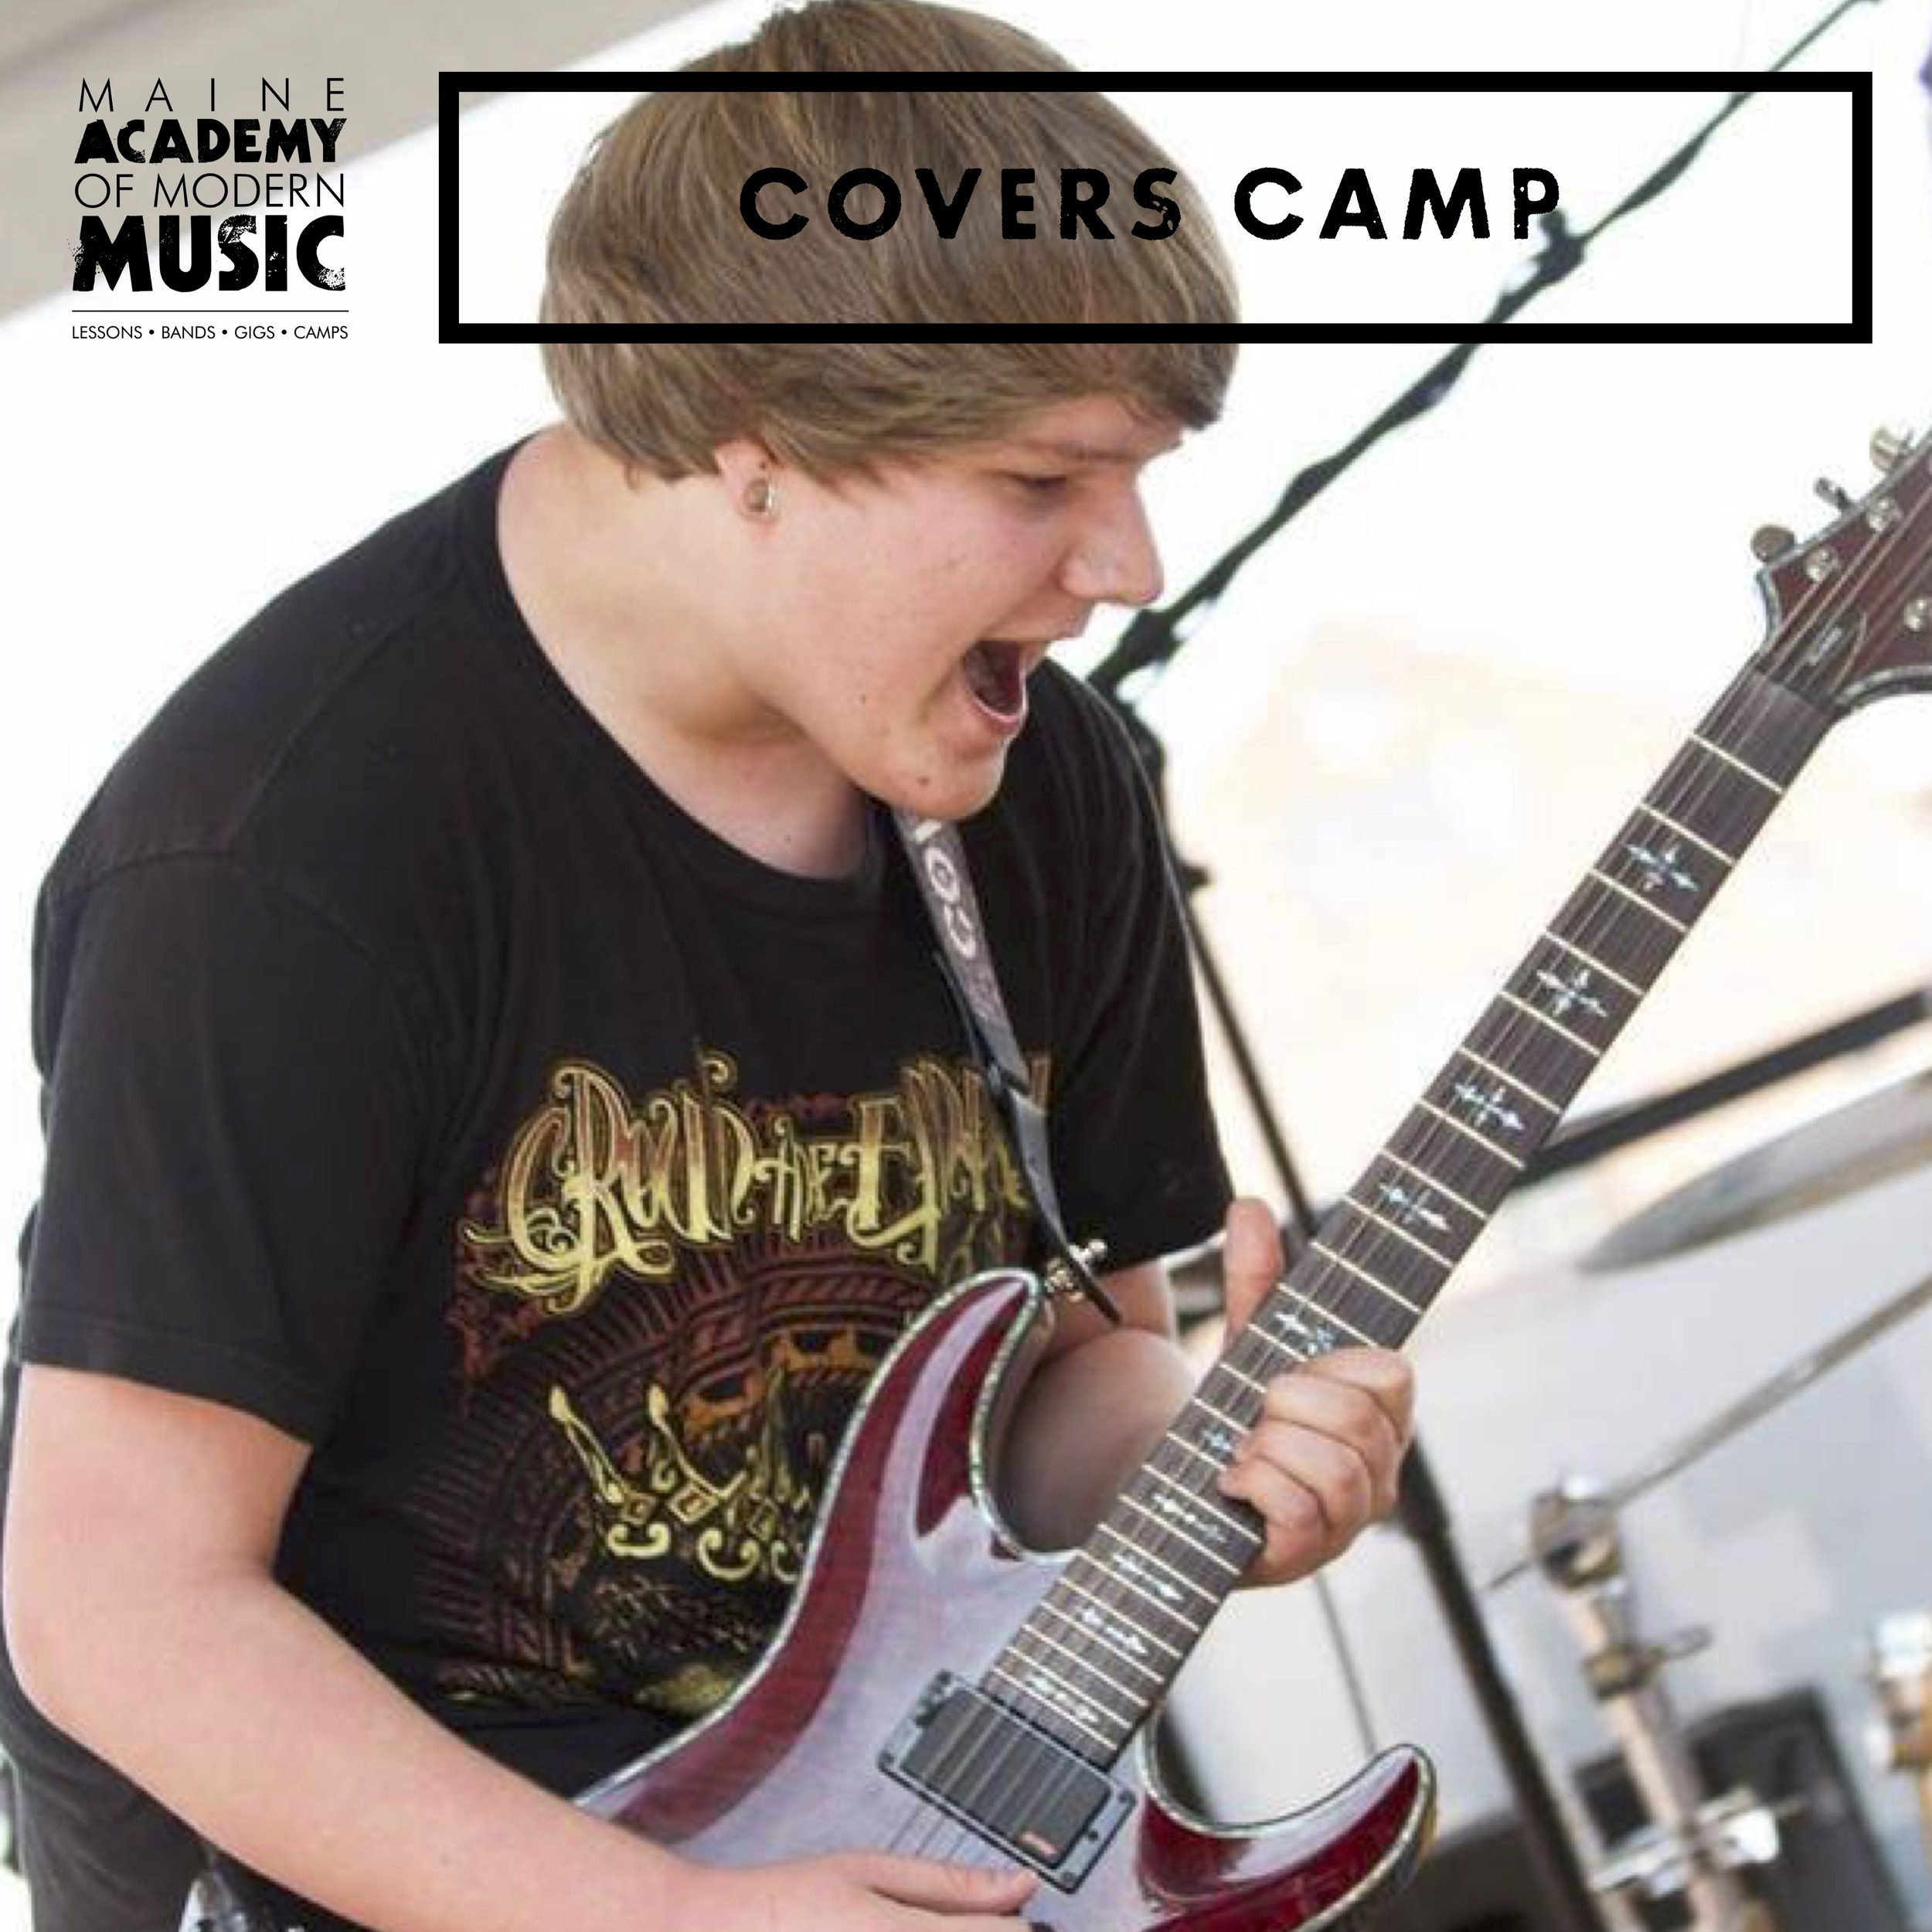 Campers form ensembles and learn how to play covers of popular songs from their favorite bands like AC/DC, Green Day, Arctic Monkeys and The White Stripes with a live performance at the end of the week.   PORTLAND: August 5 - 9 & August 26 - 30    TUITION: $325 per week    HOURS: 9am-3:30pm